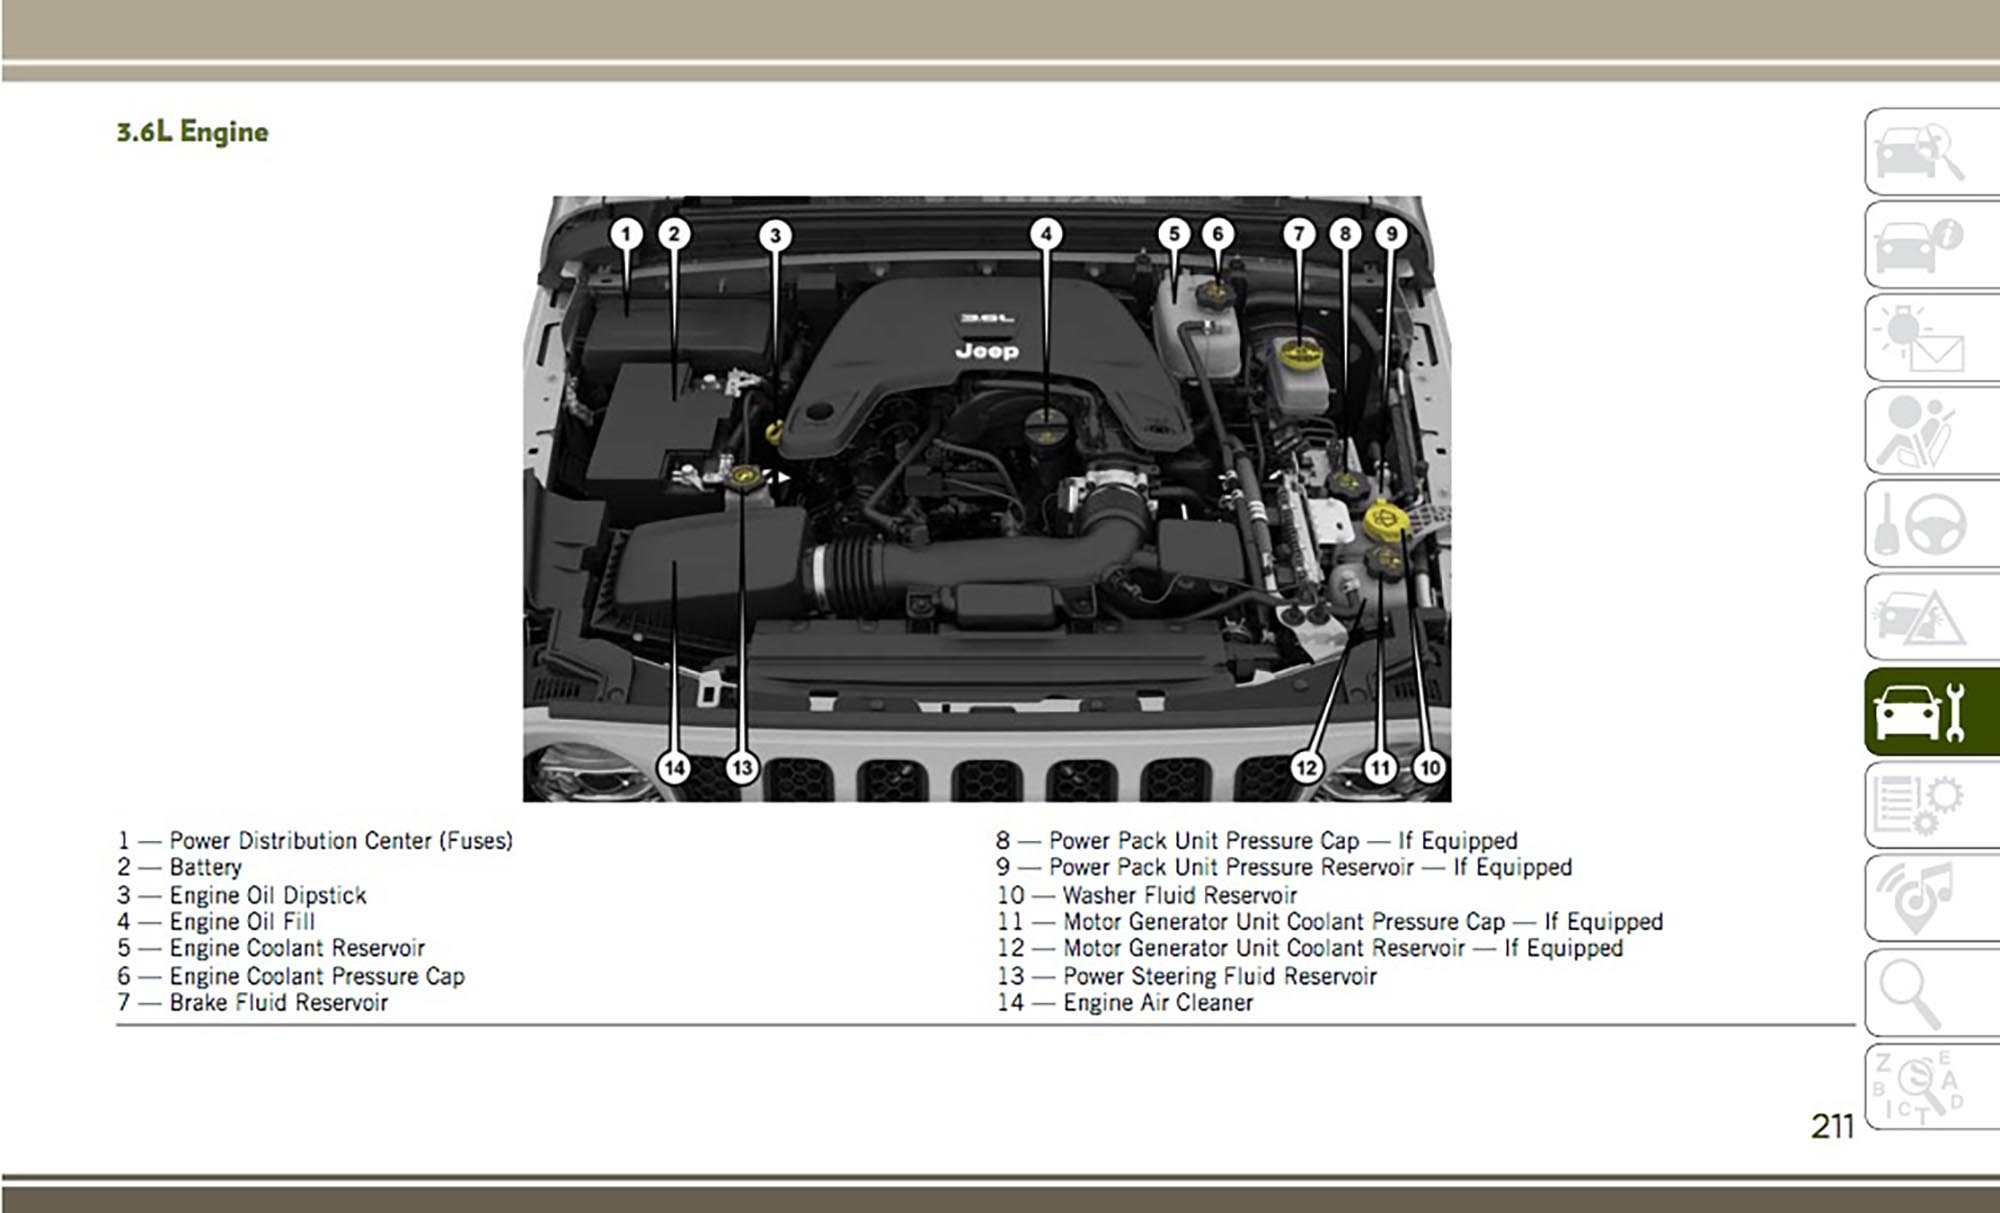 hight resolution of 2018 jl wrangler owner s manual leaked 8 things you may love 2010 jeep wrangler 3 8 engine diagram on dodge shadow engine diagram source dodge 2 7l